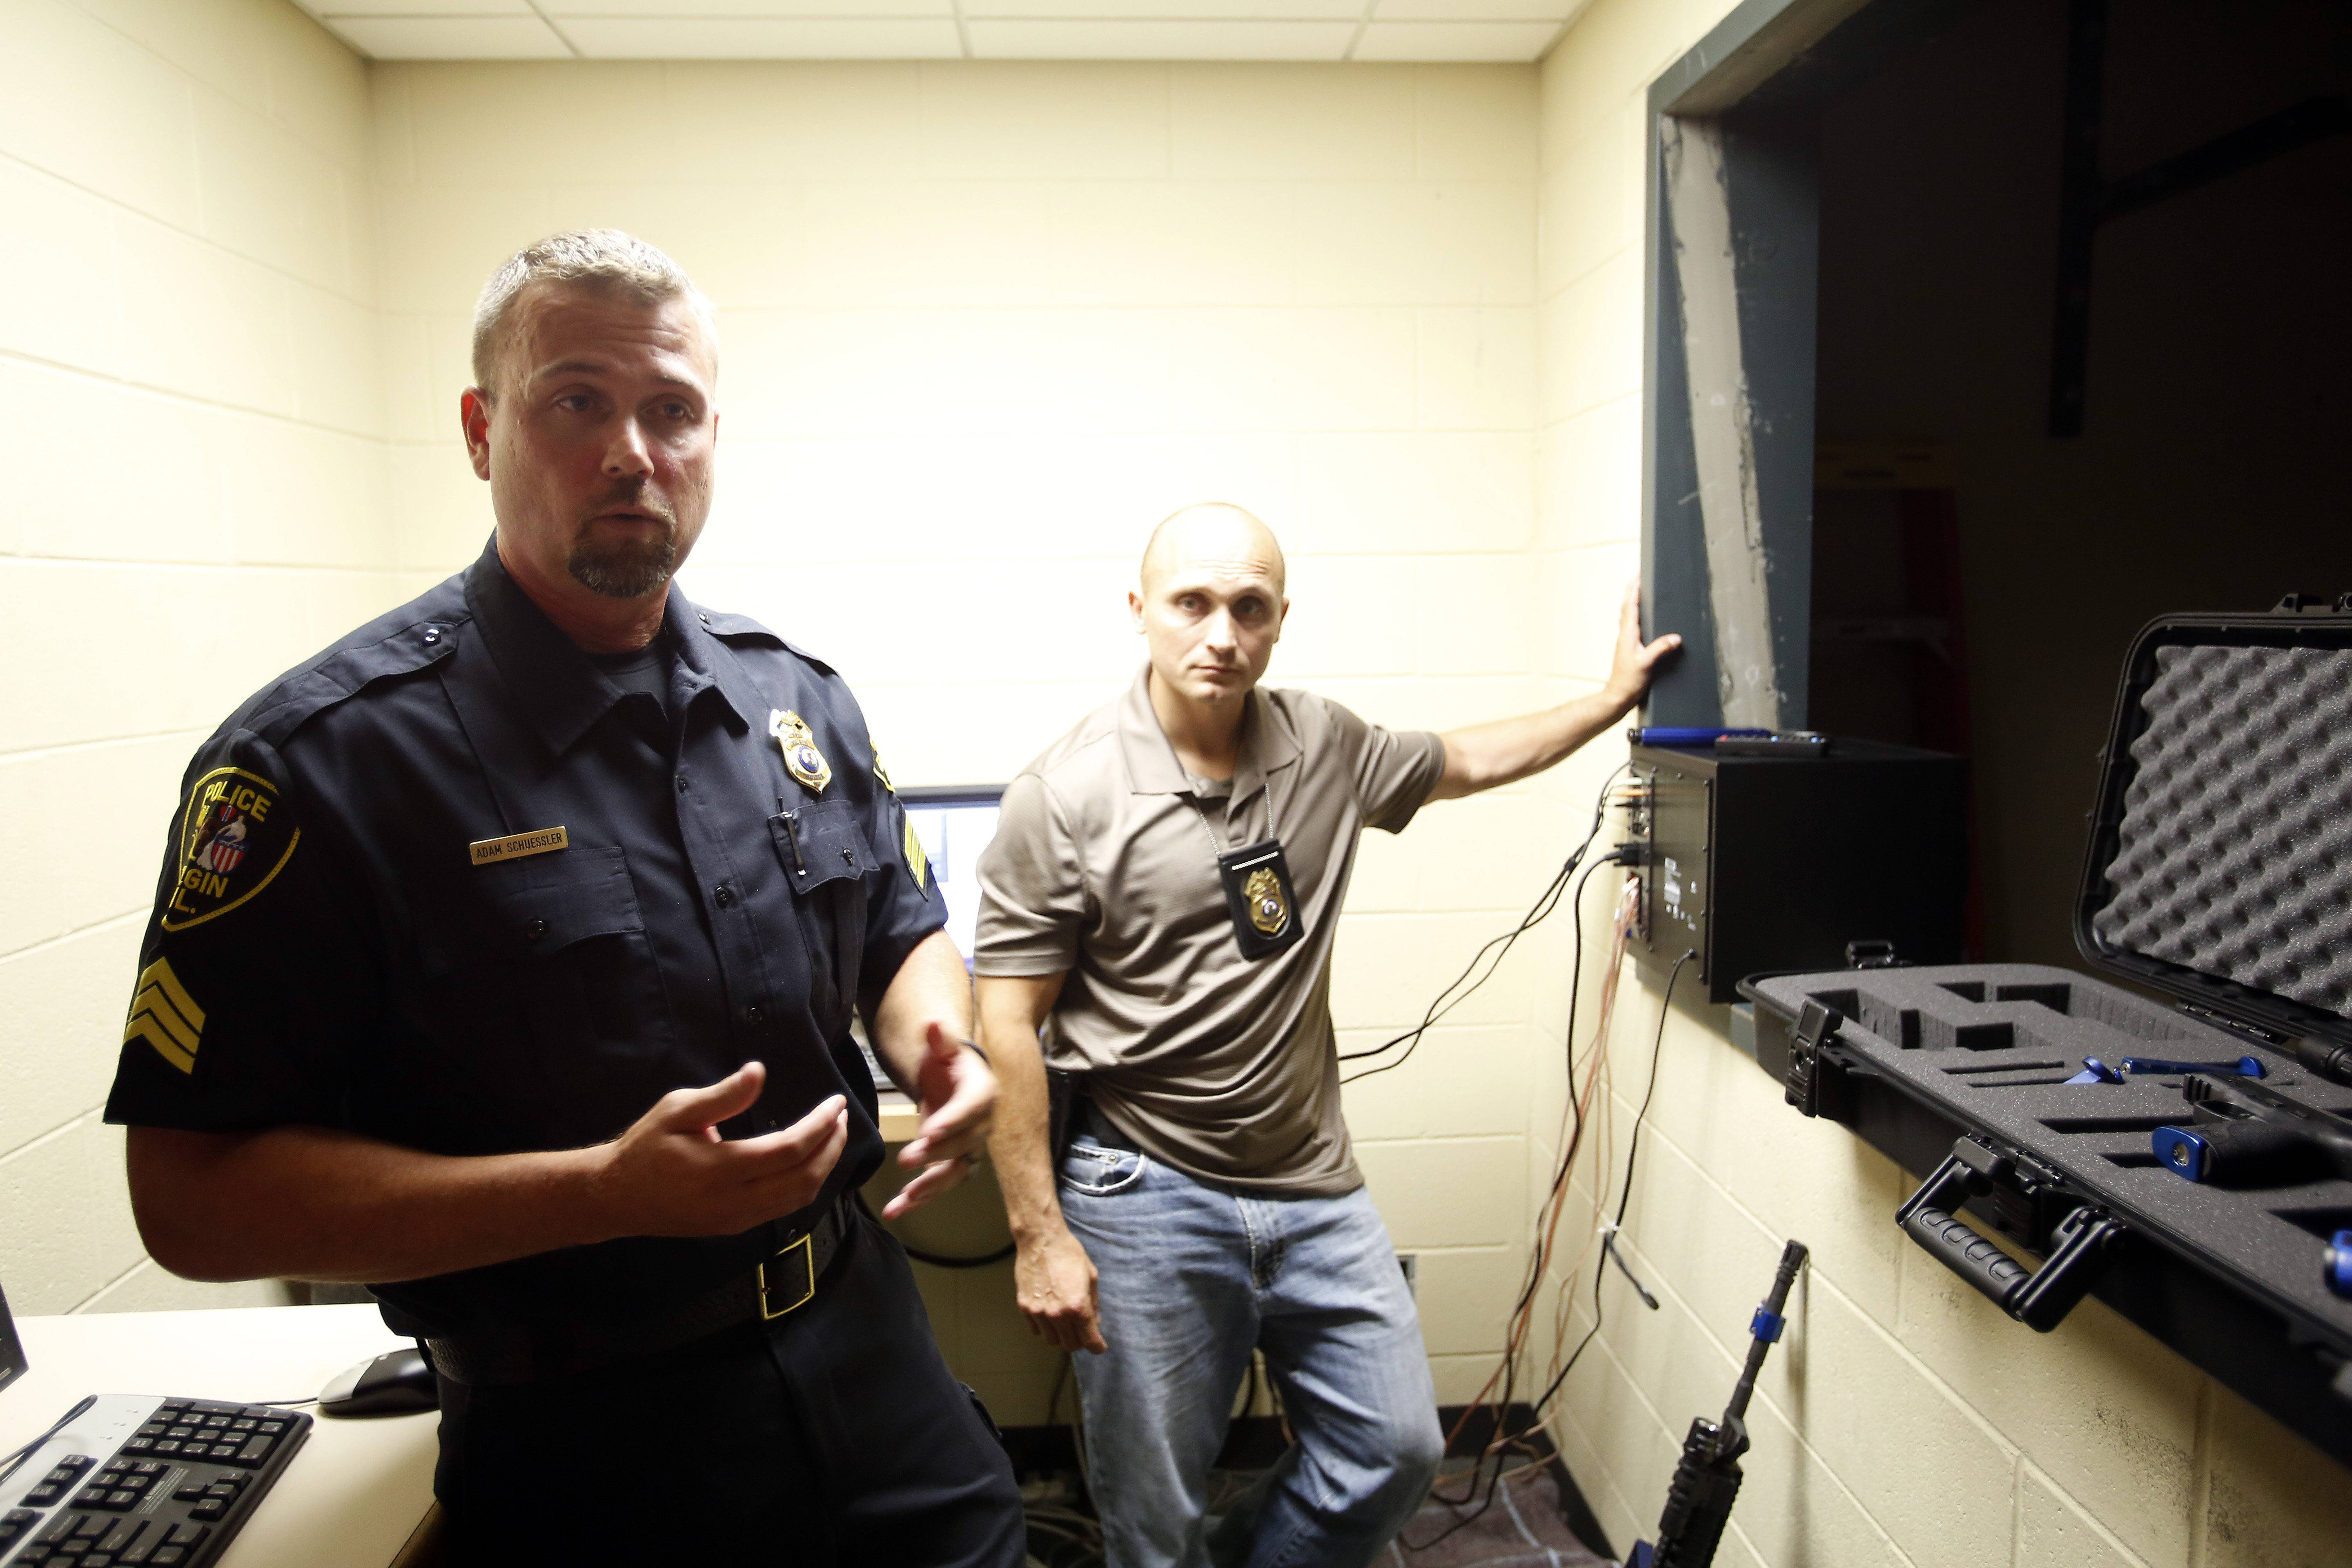 The Ti Training simulator cost about $65,000. The Elgin Police Department tested several models that cost up to $500,000 before purchasing it three months ago. Pictured Sgt. Adam Schuessler, left, and Lt. Frank Trost.